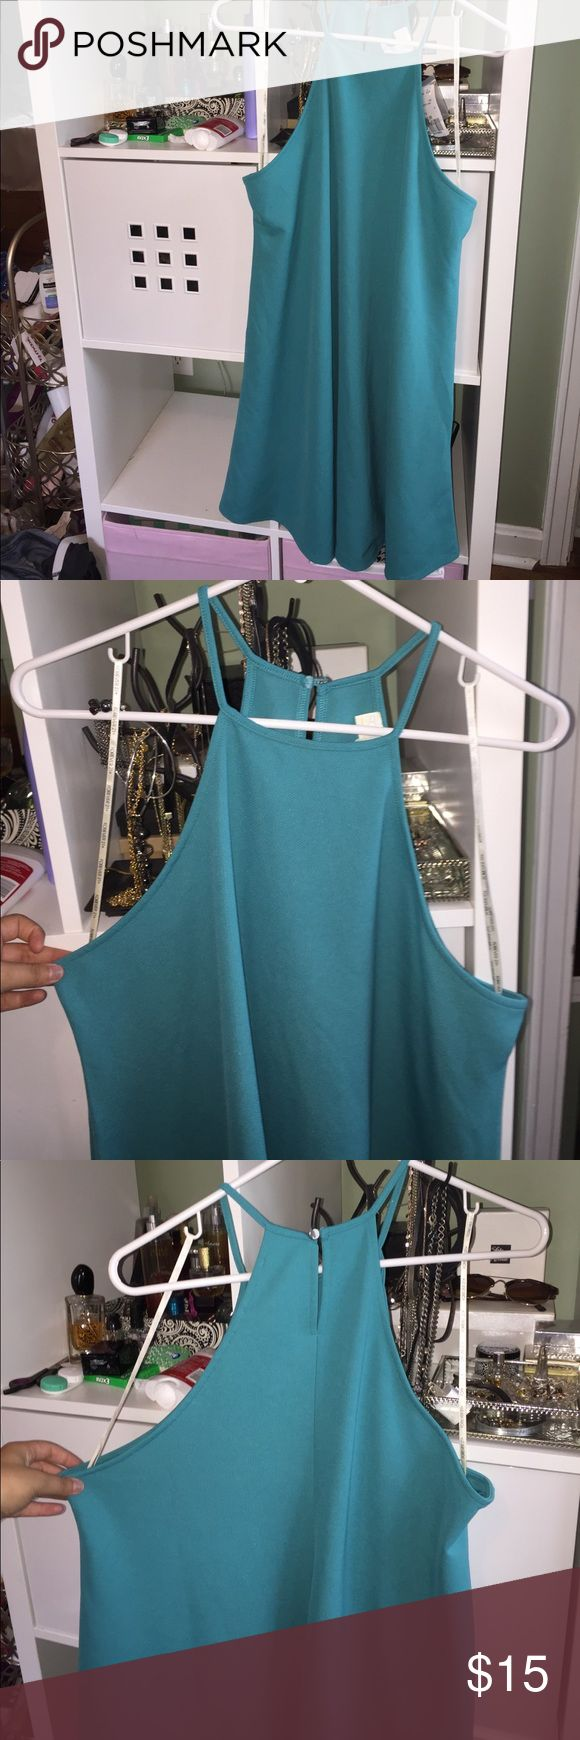 Brand NWT turquoise sleeveless dress NWT, pictures don't do this color justice! Gorgeous aquamarine/turquoise shade of blue. Flattering fit. Selling for a friend, who bought this for an event and never wore it, if it were my size I would keep it! Gorgeous piece, can be dressed up with jewelry. Not Lily Dresses